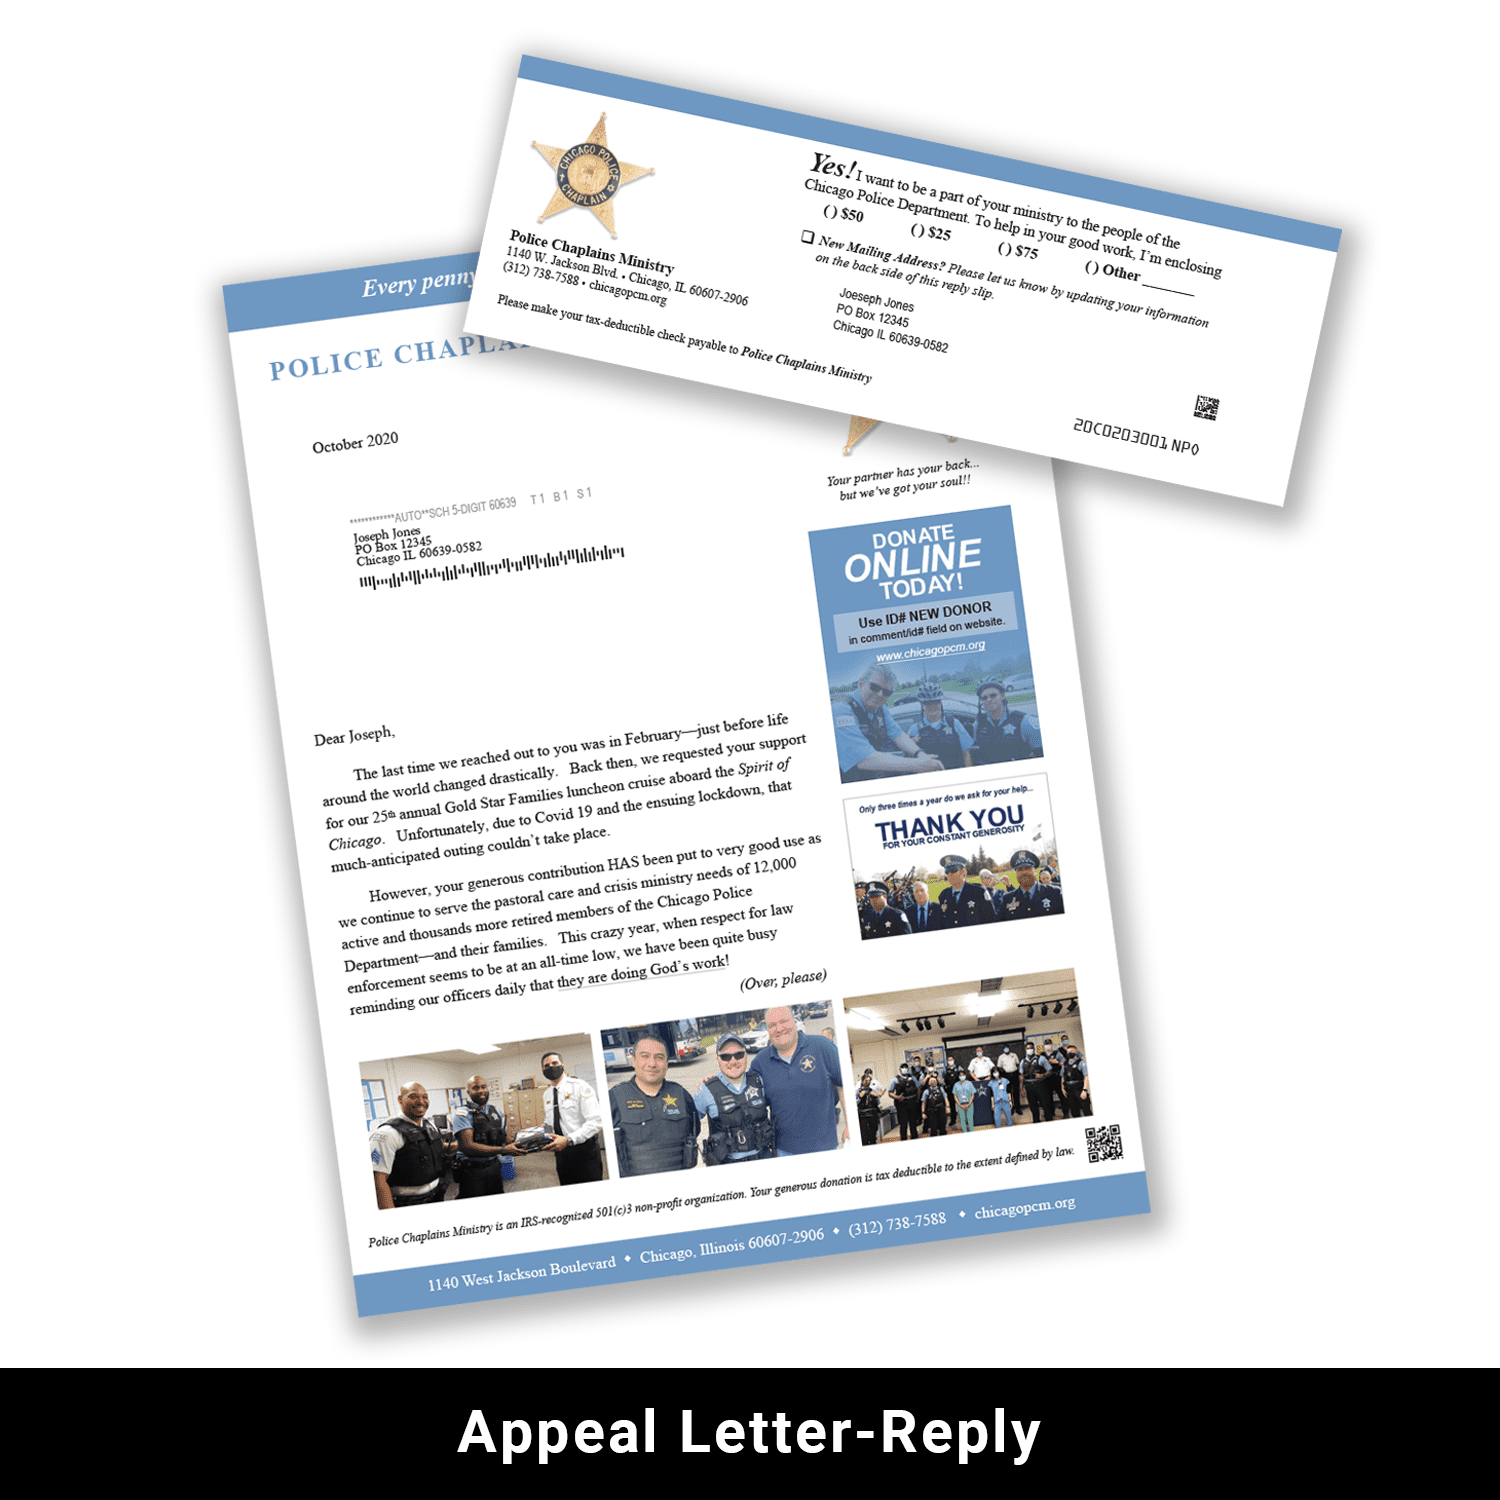 Print appeal letter-reply example